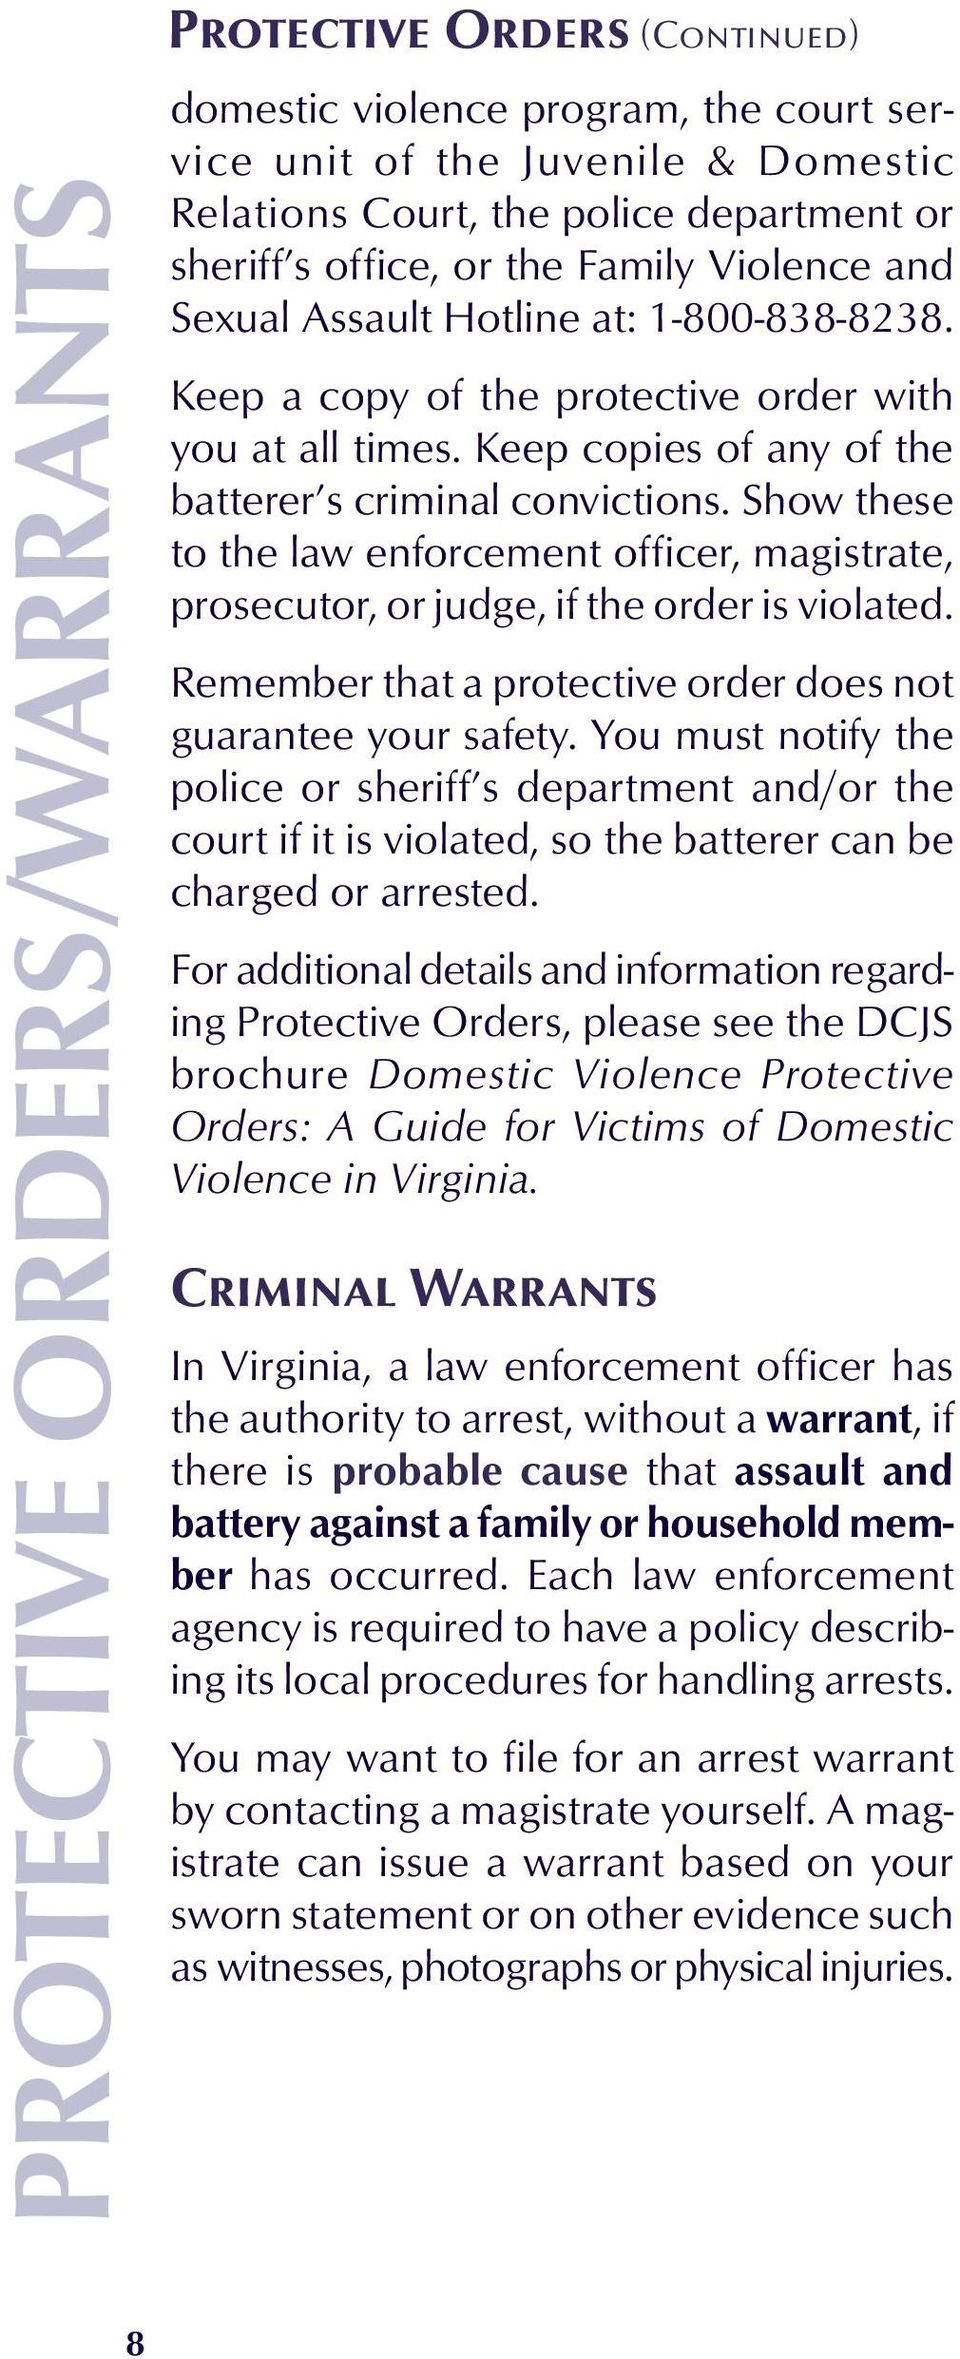 Show these to the law enforcement officer, magistrate, prosecutor, or judge, if the order is violated. Remember that a protective order does not guarantee your safety.